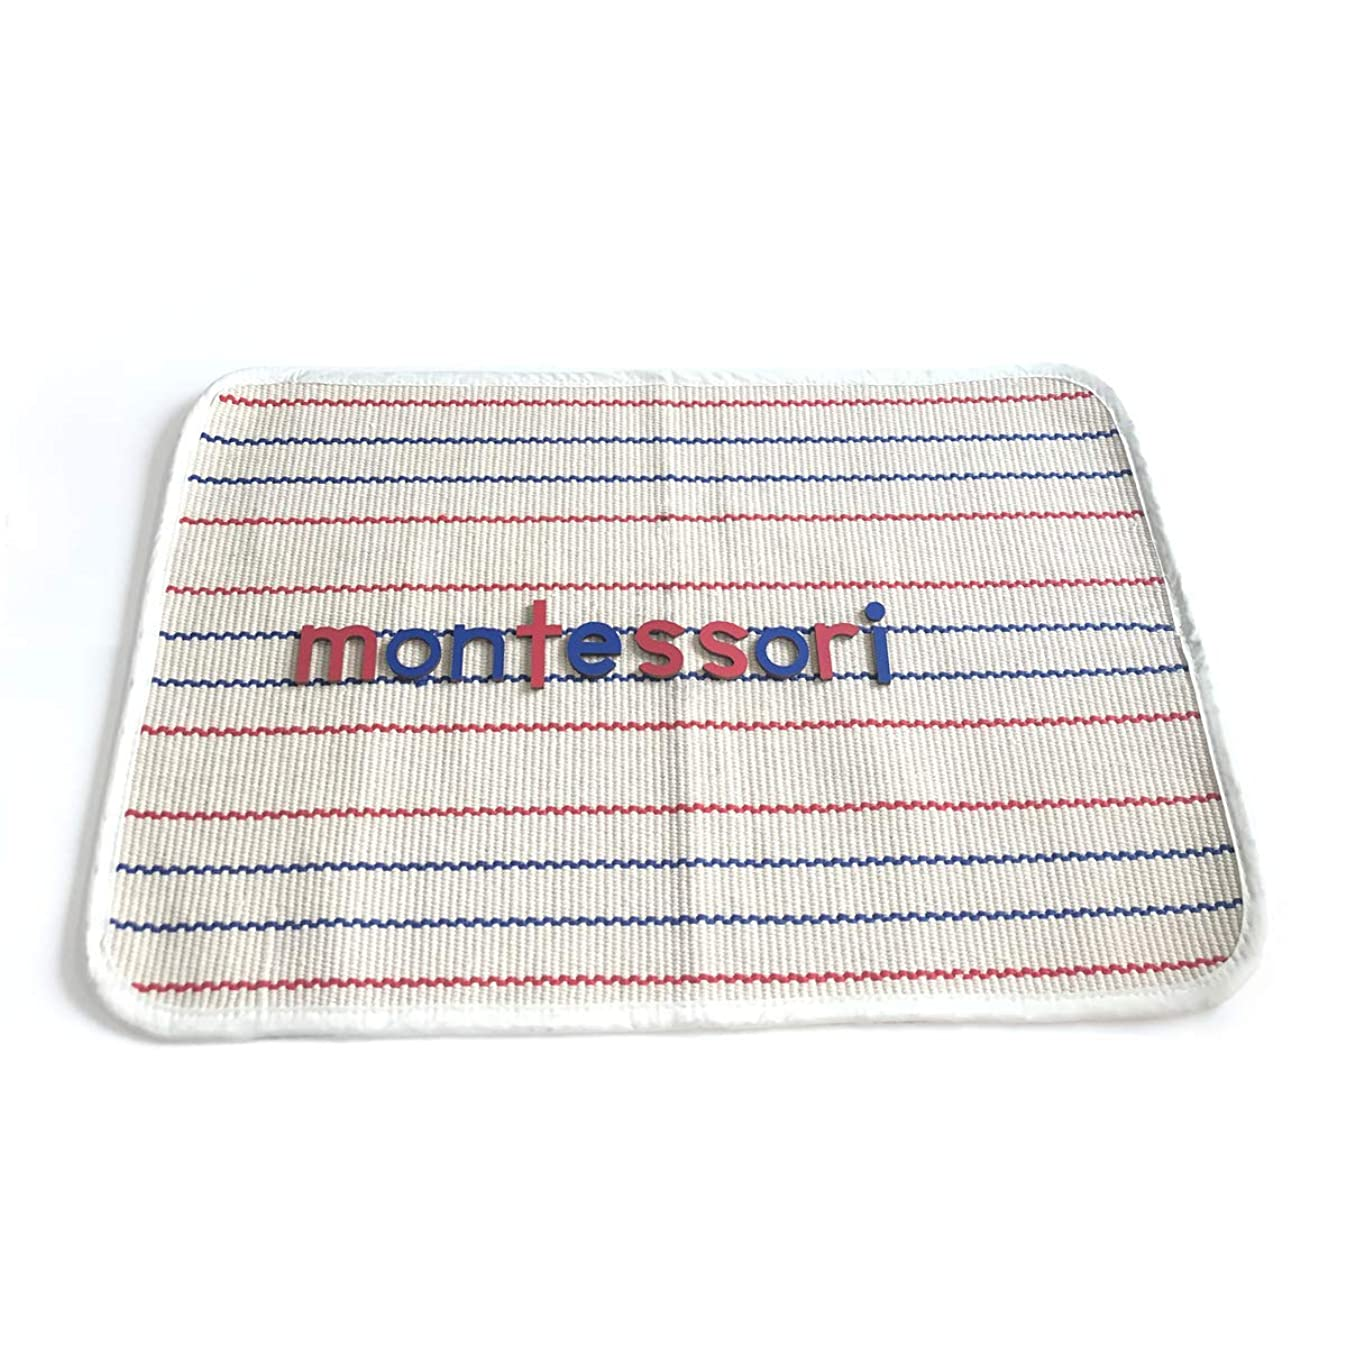 EOFEEL Montessori Materials Accessories Children Playing Mat Working Rug for moveable Alphabet Letters (23.6×16.5 inches)